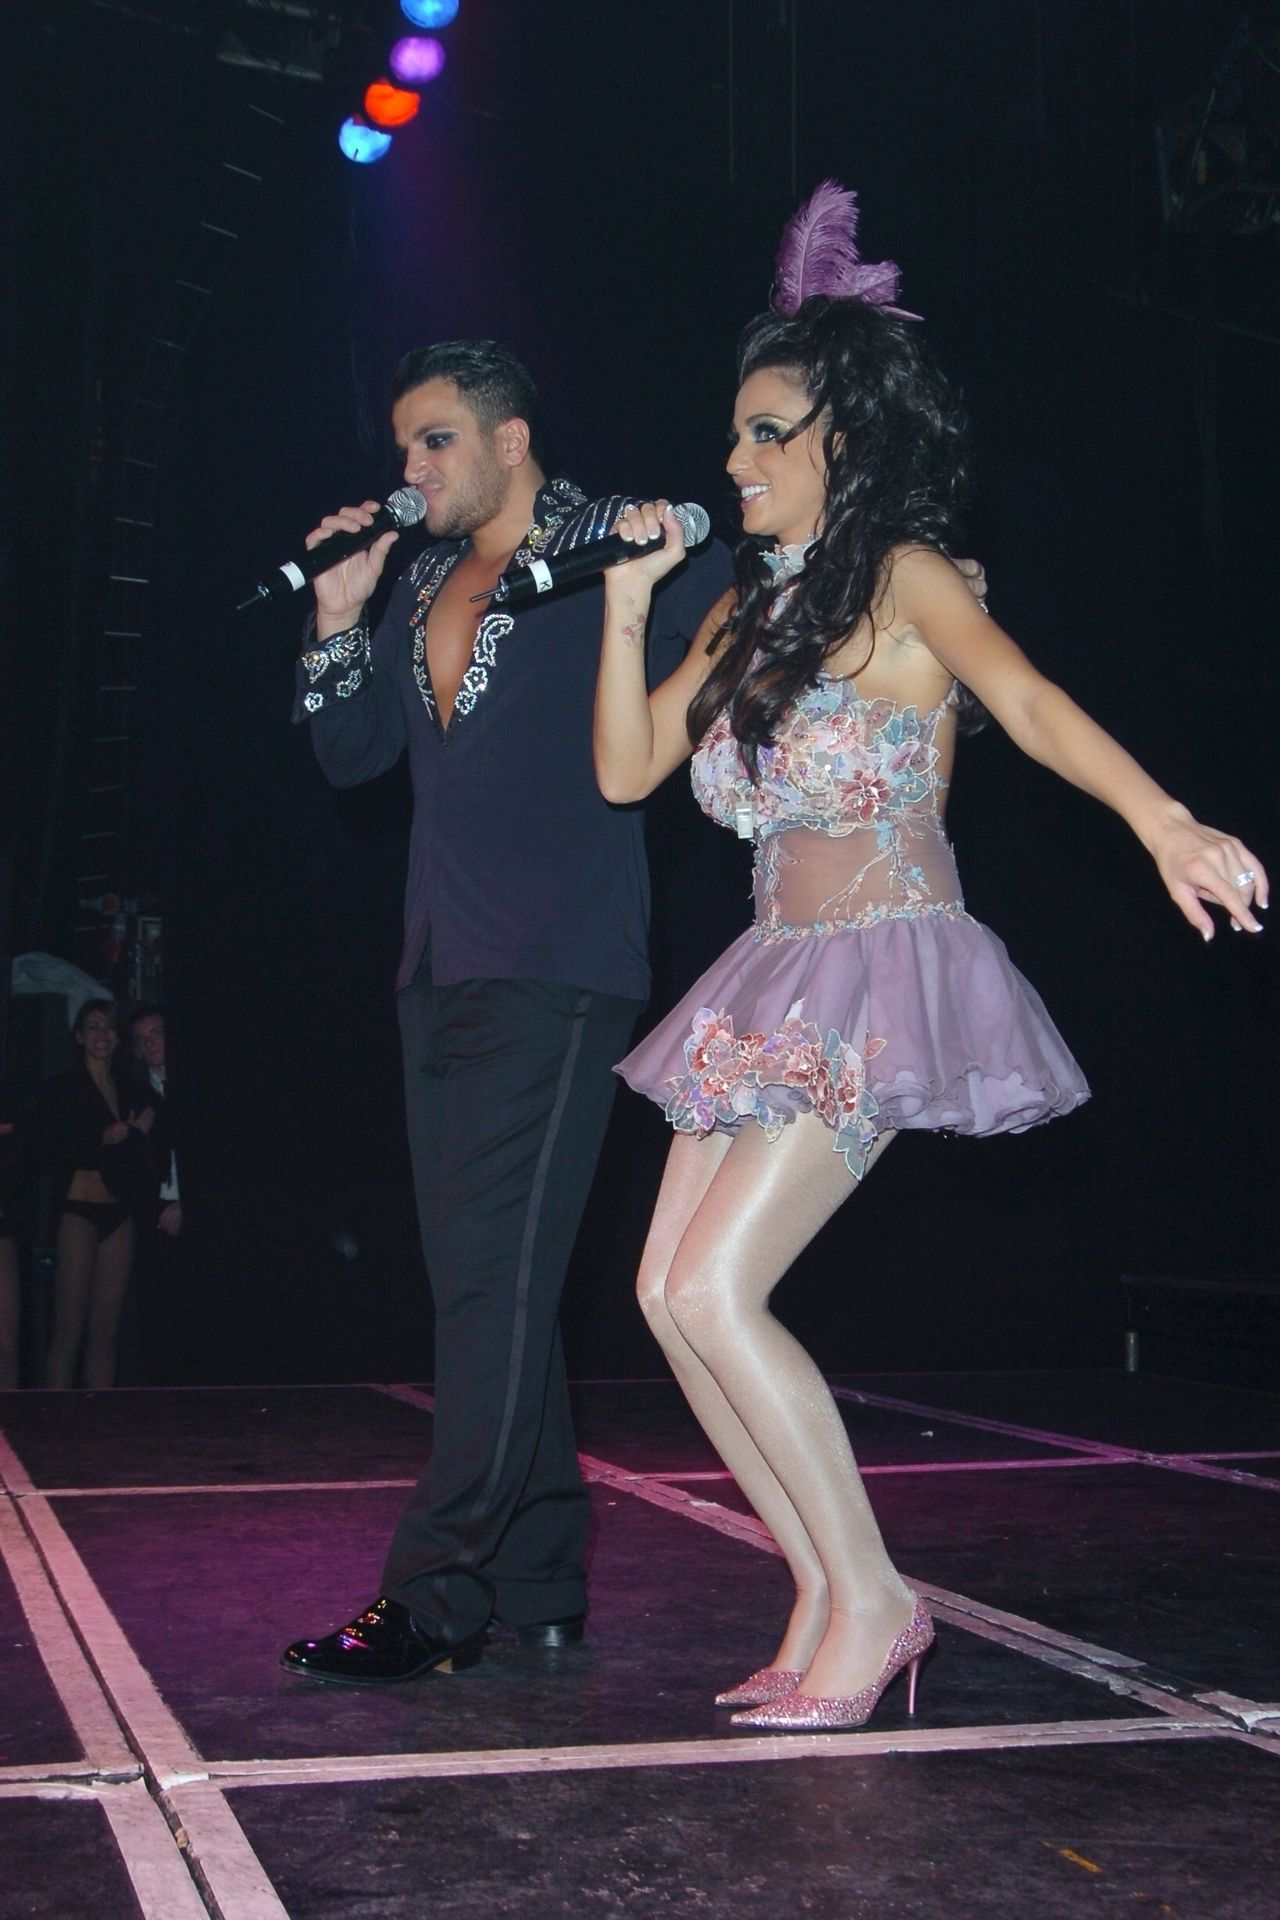 Katie Price & Peter Andre Perform At Gay Astoria In London 0033